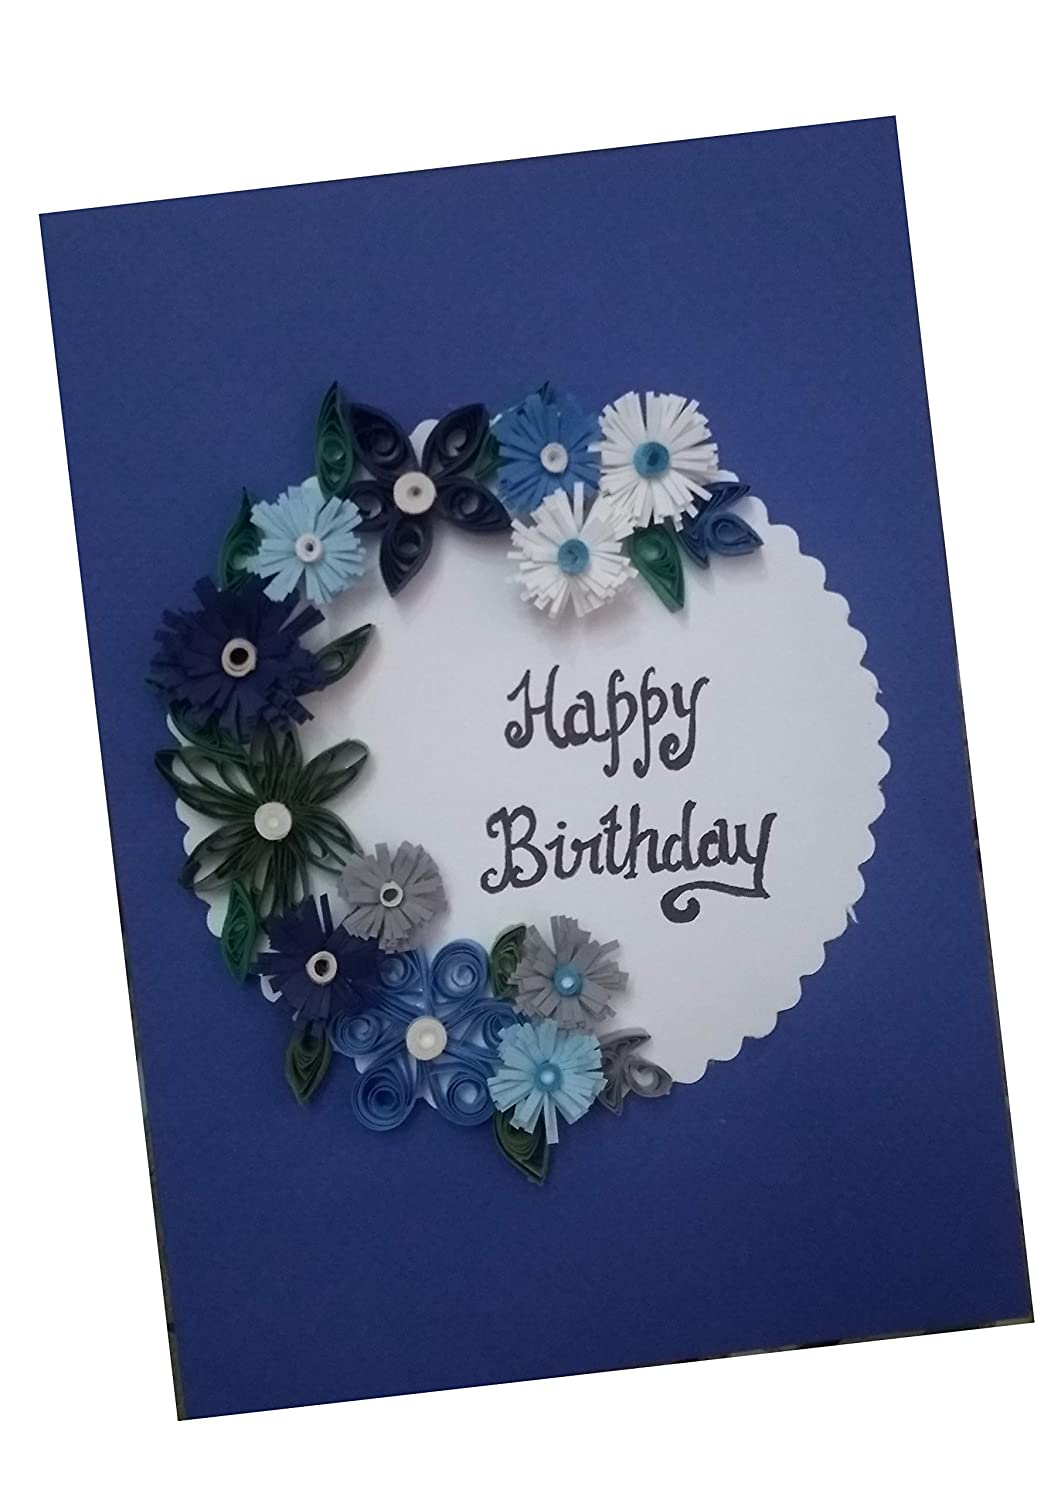 Tremendous Innover360 Handmade Quilling Birthday Greeting Card Blue Color Funny Birthday Cards Online Fluifree Goldxyz